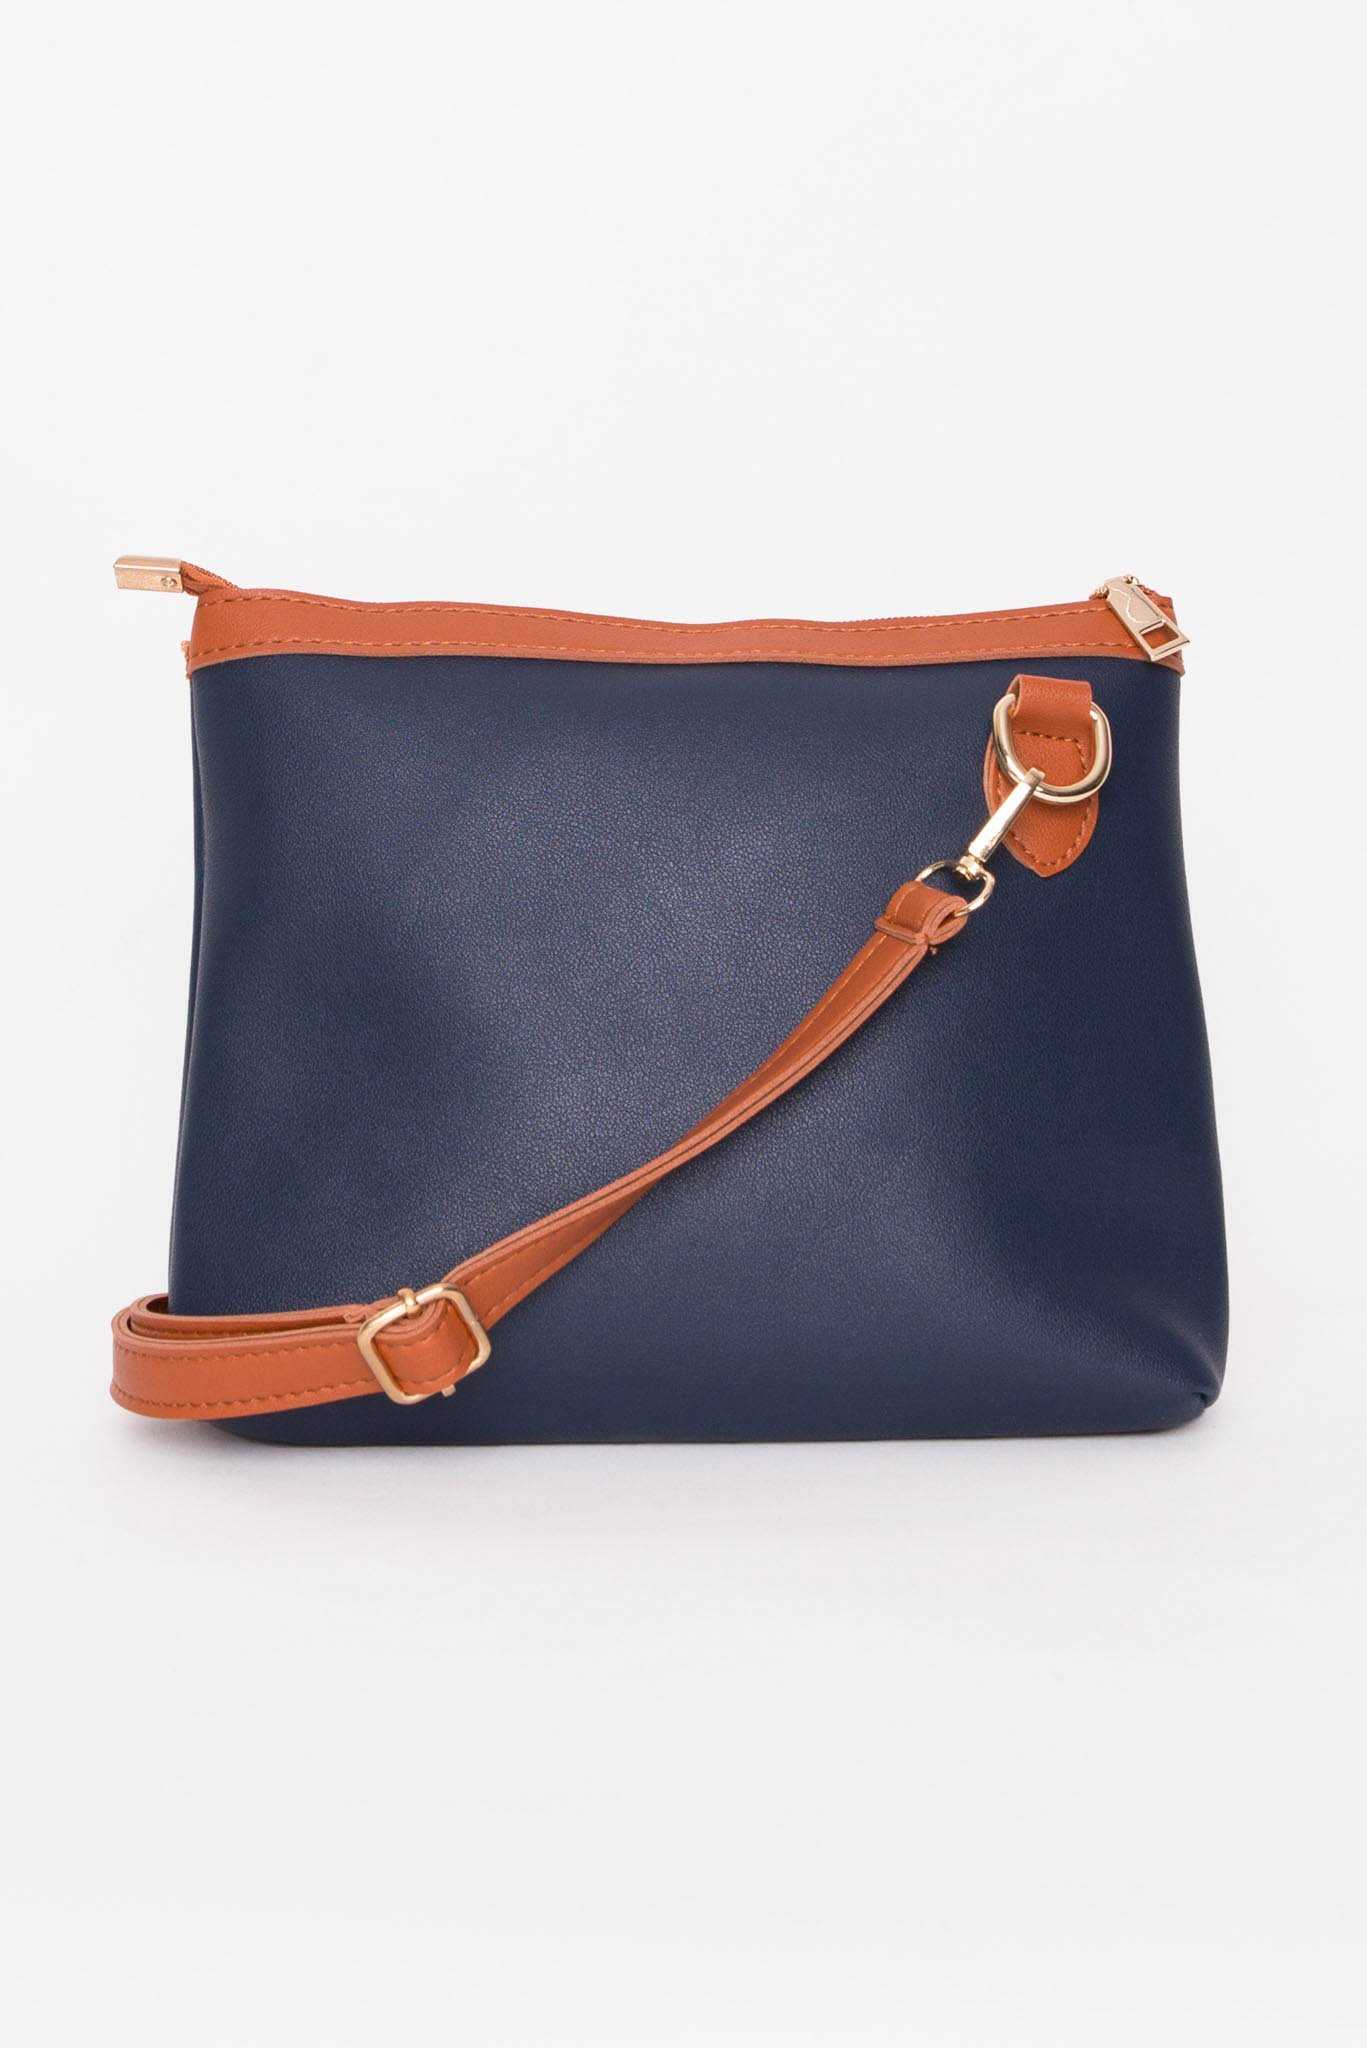 Handbag - Blue | Raw Orange